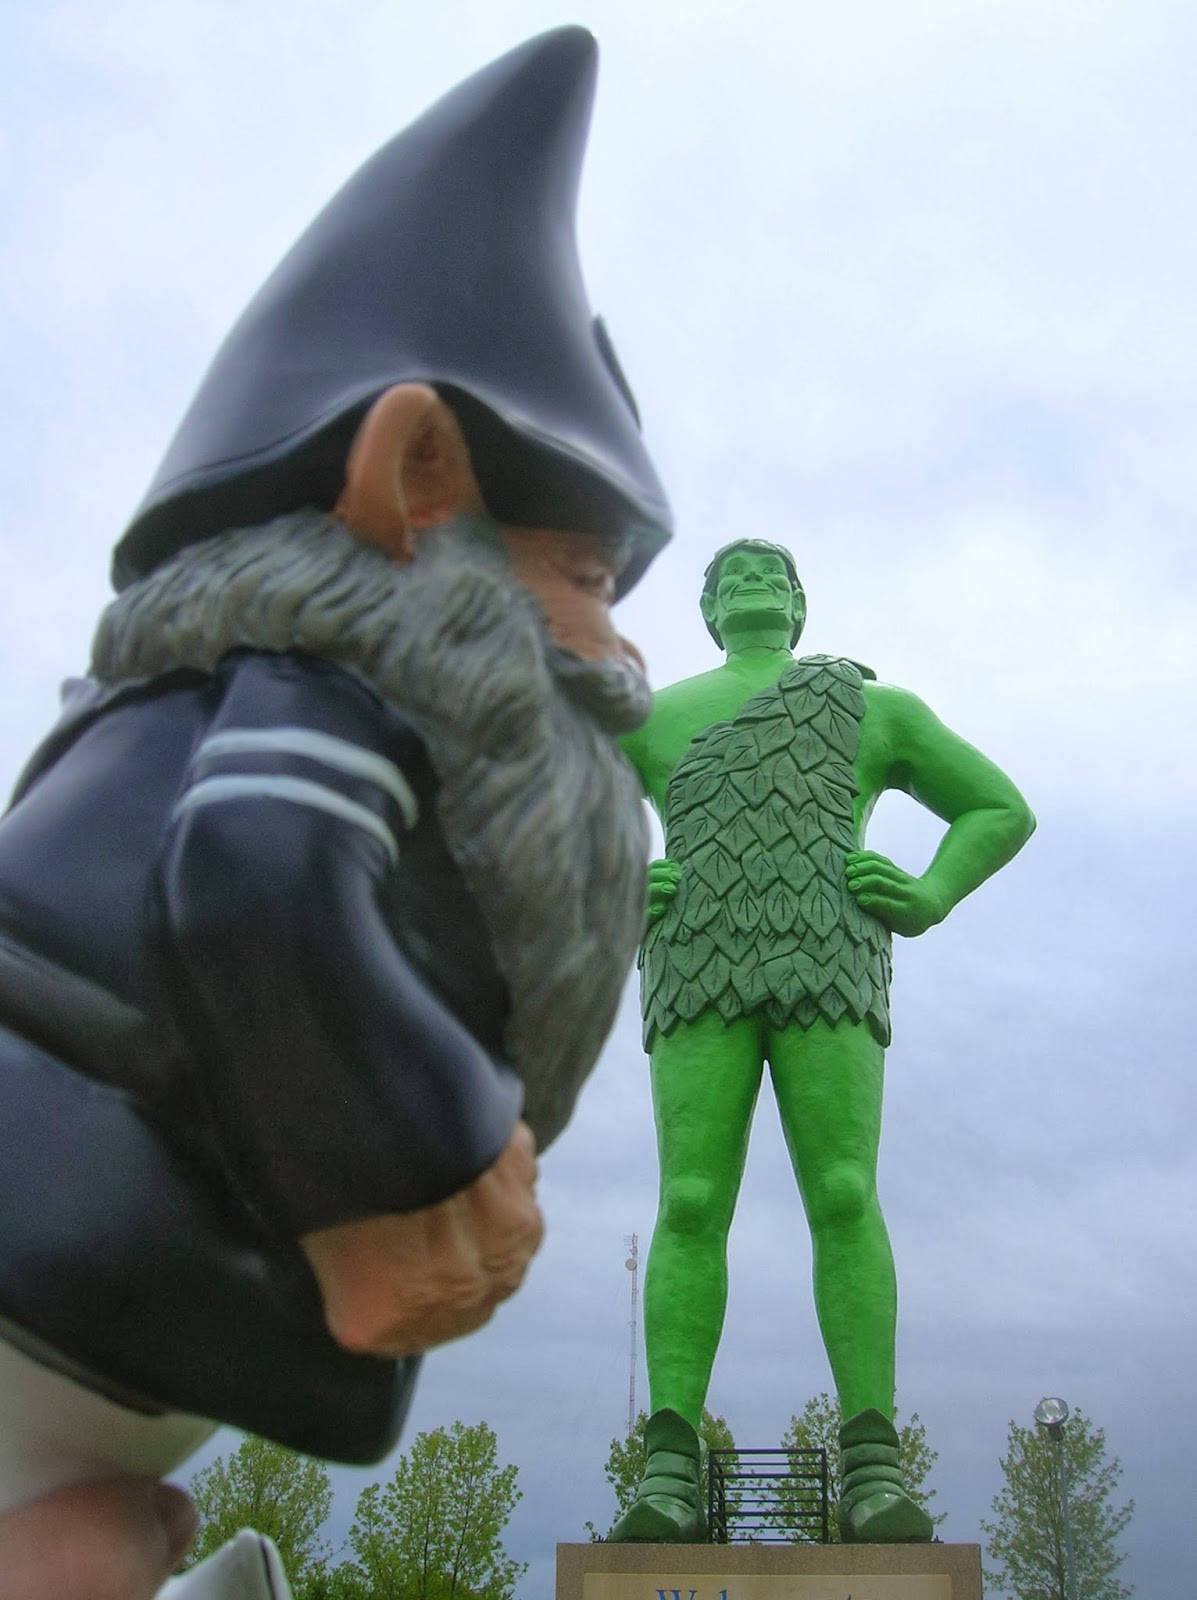 Penn State Gnome kissing the jolly green giant